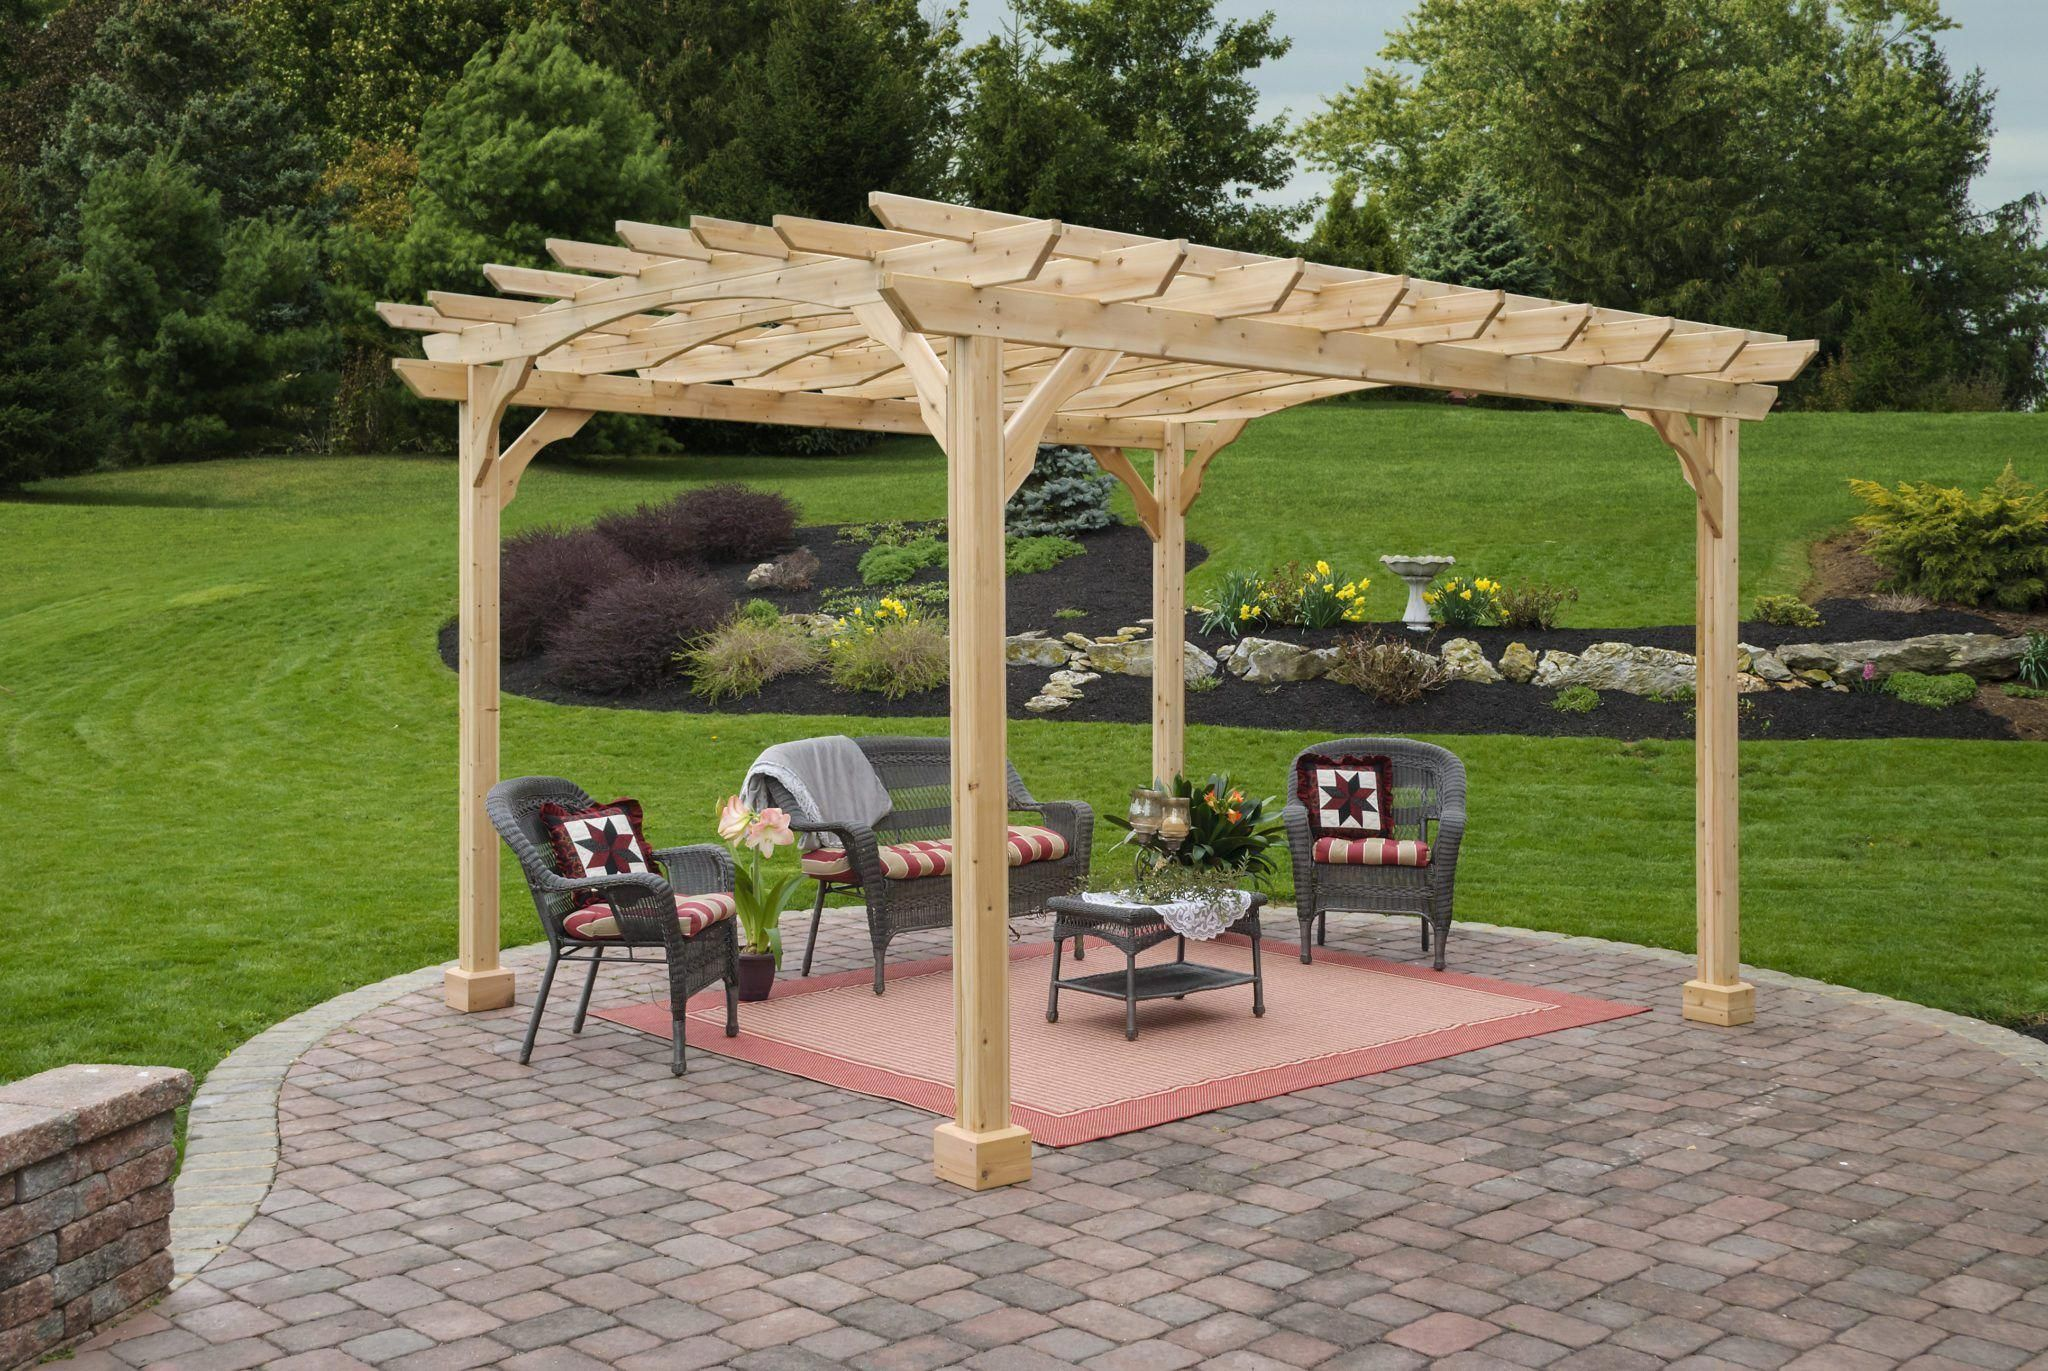 10x12 Wood Pergola Kit Pergola Wood Pergola Kits Wood Pergola